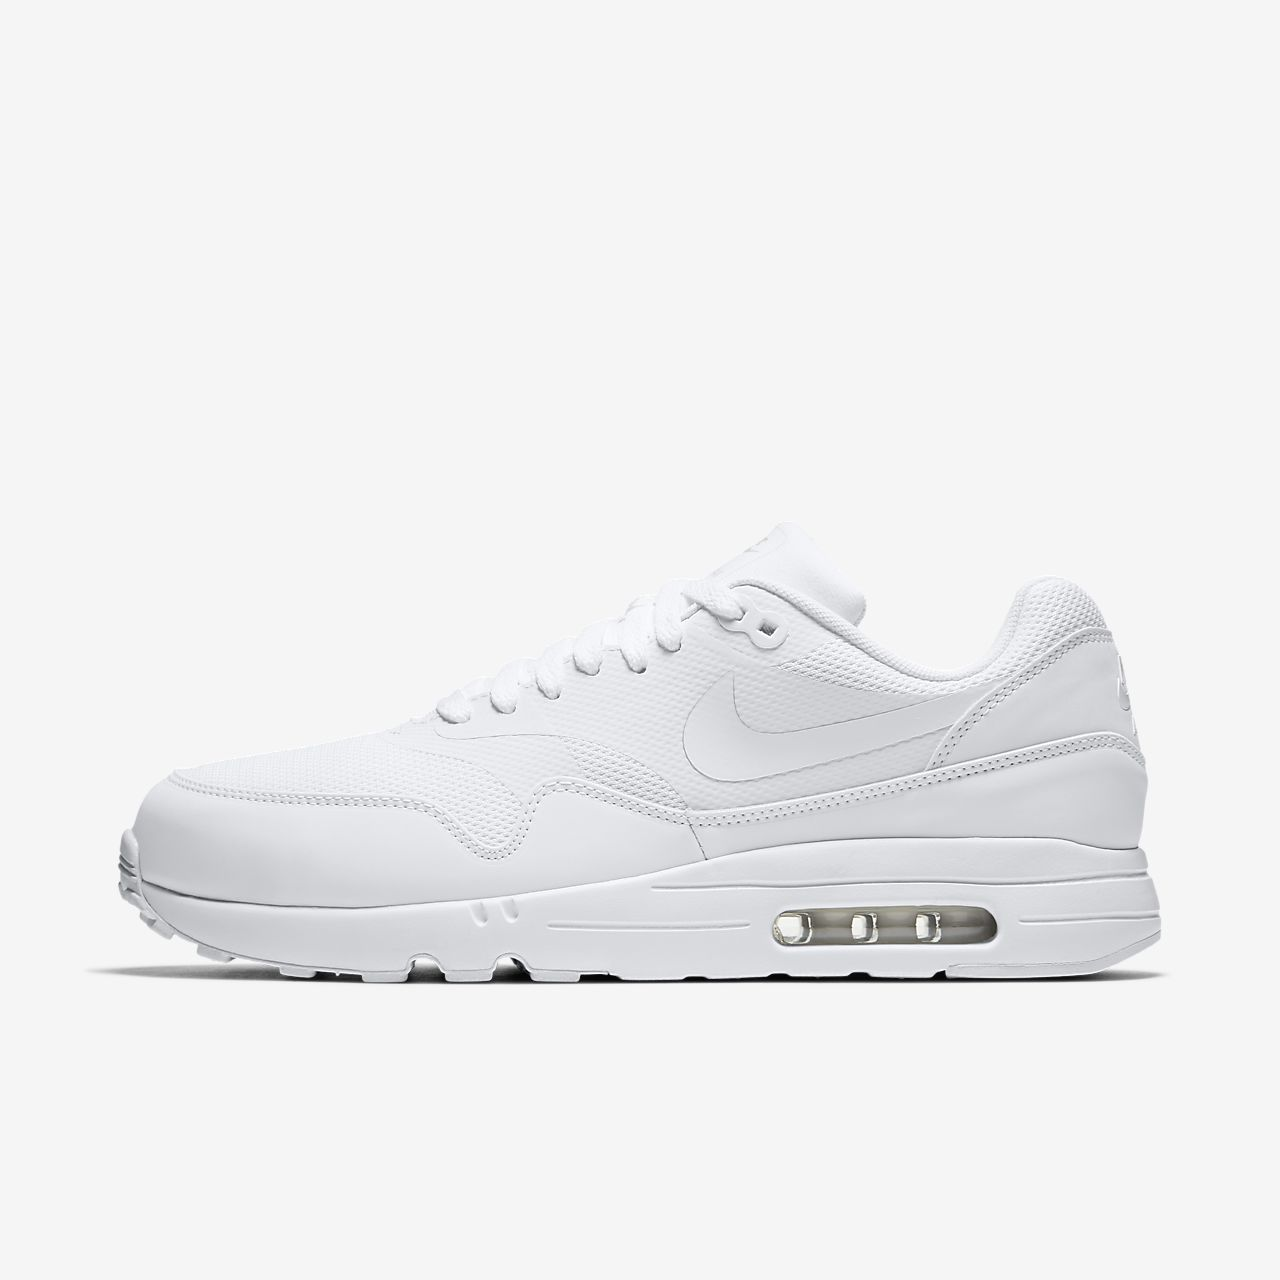 nike air max 1 all white men's nike sneakers